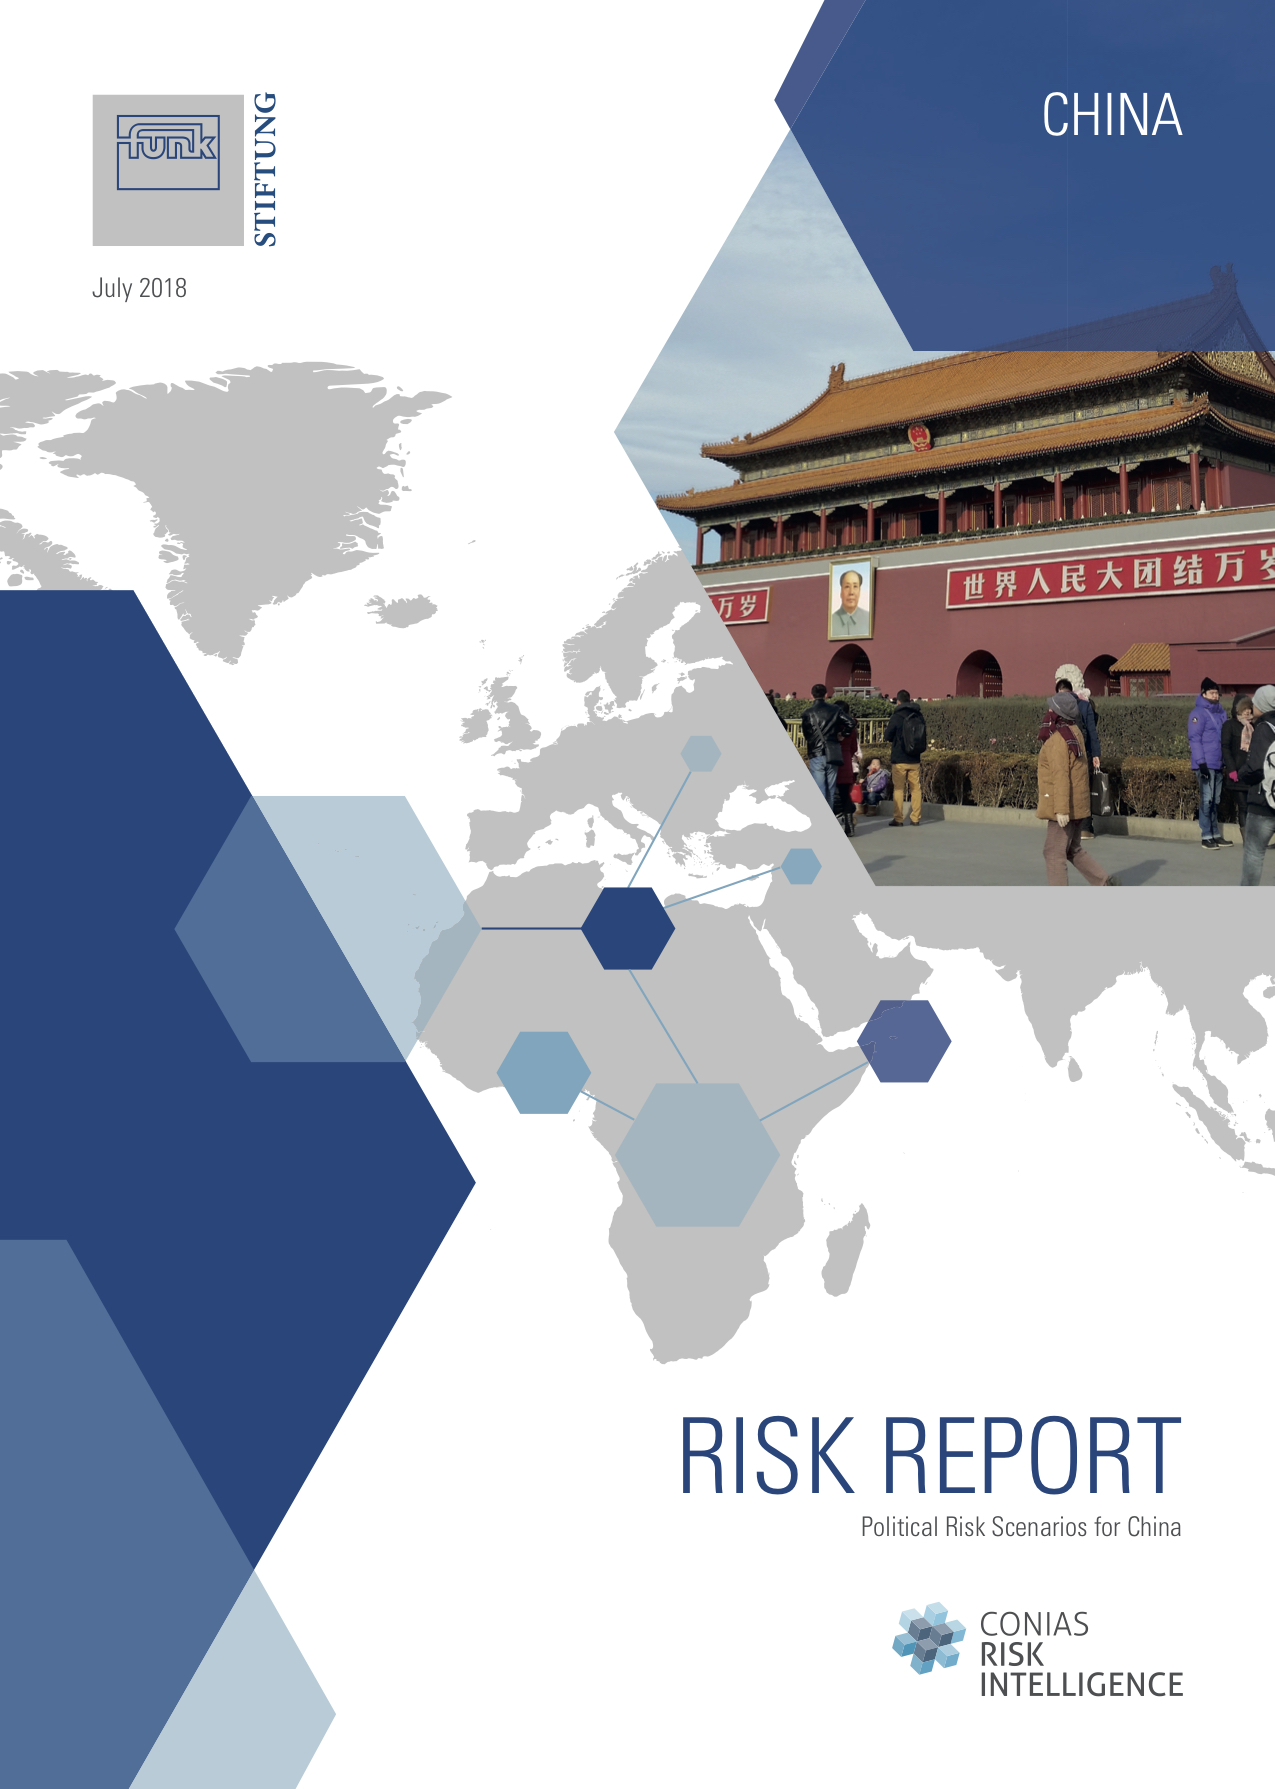 Risk Report China